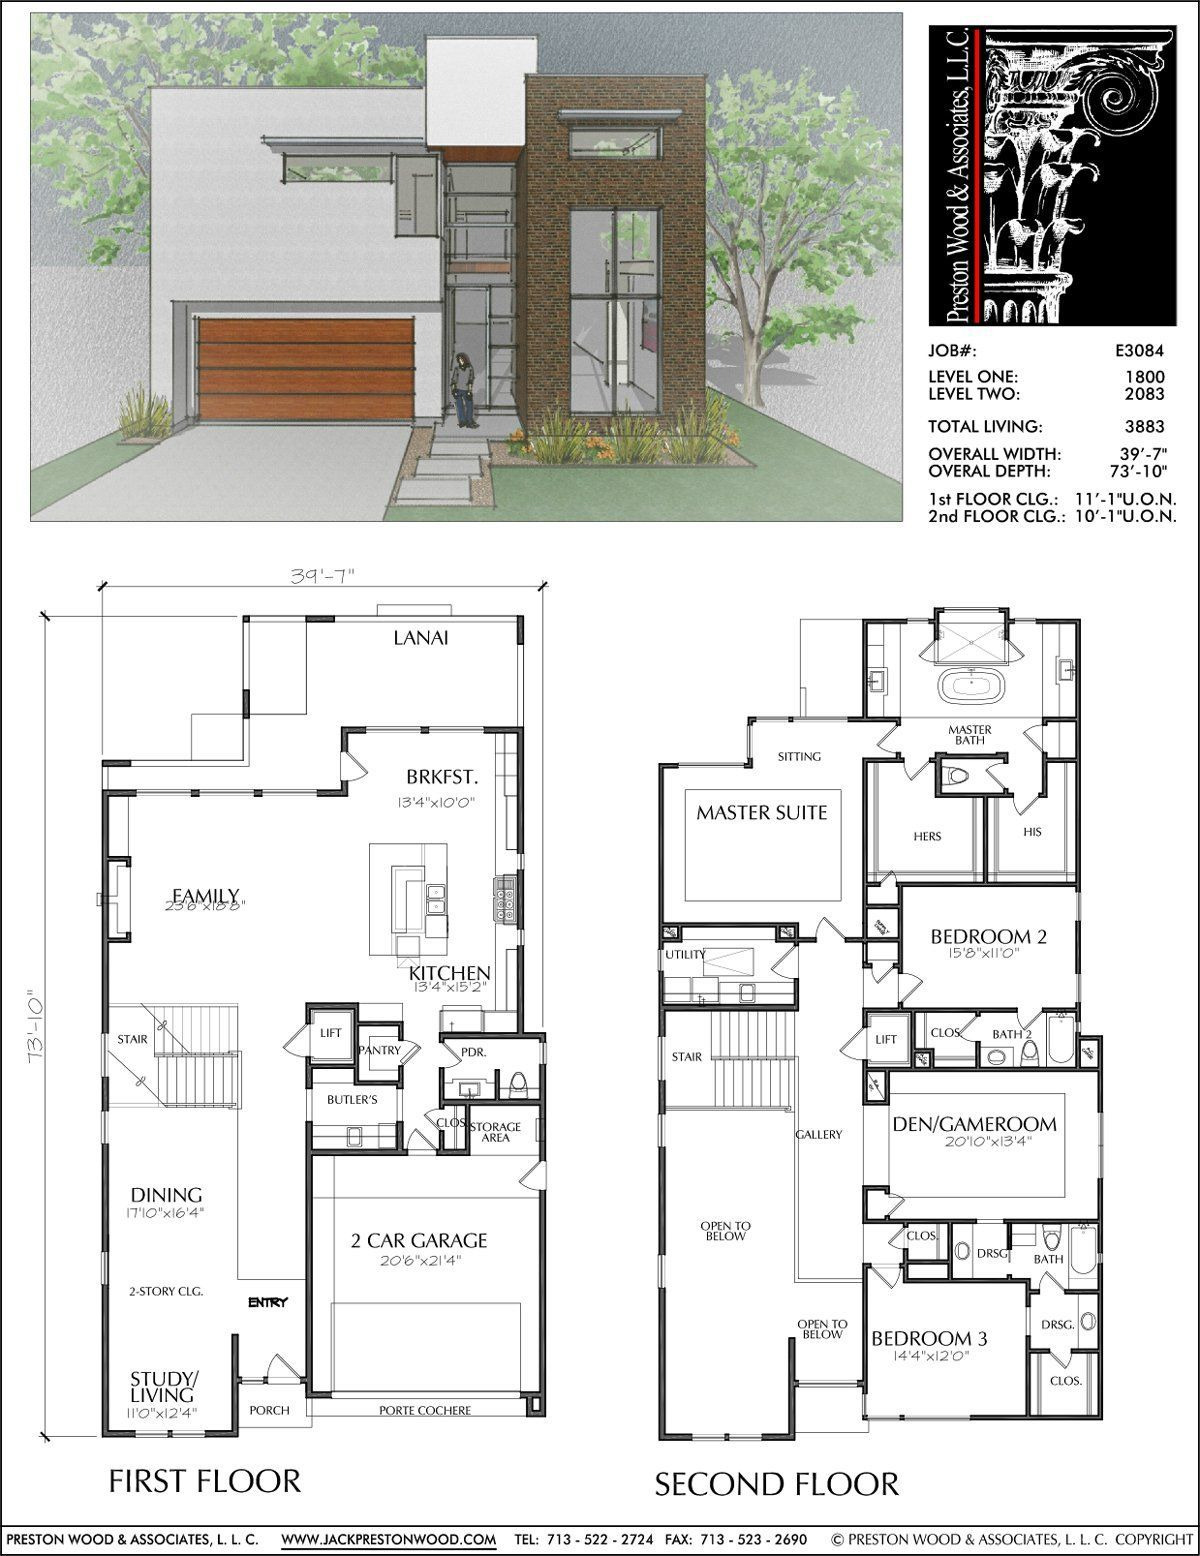 Modern Two Story House Plans Inspirational Pin Auf Haus Grundriss